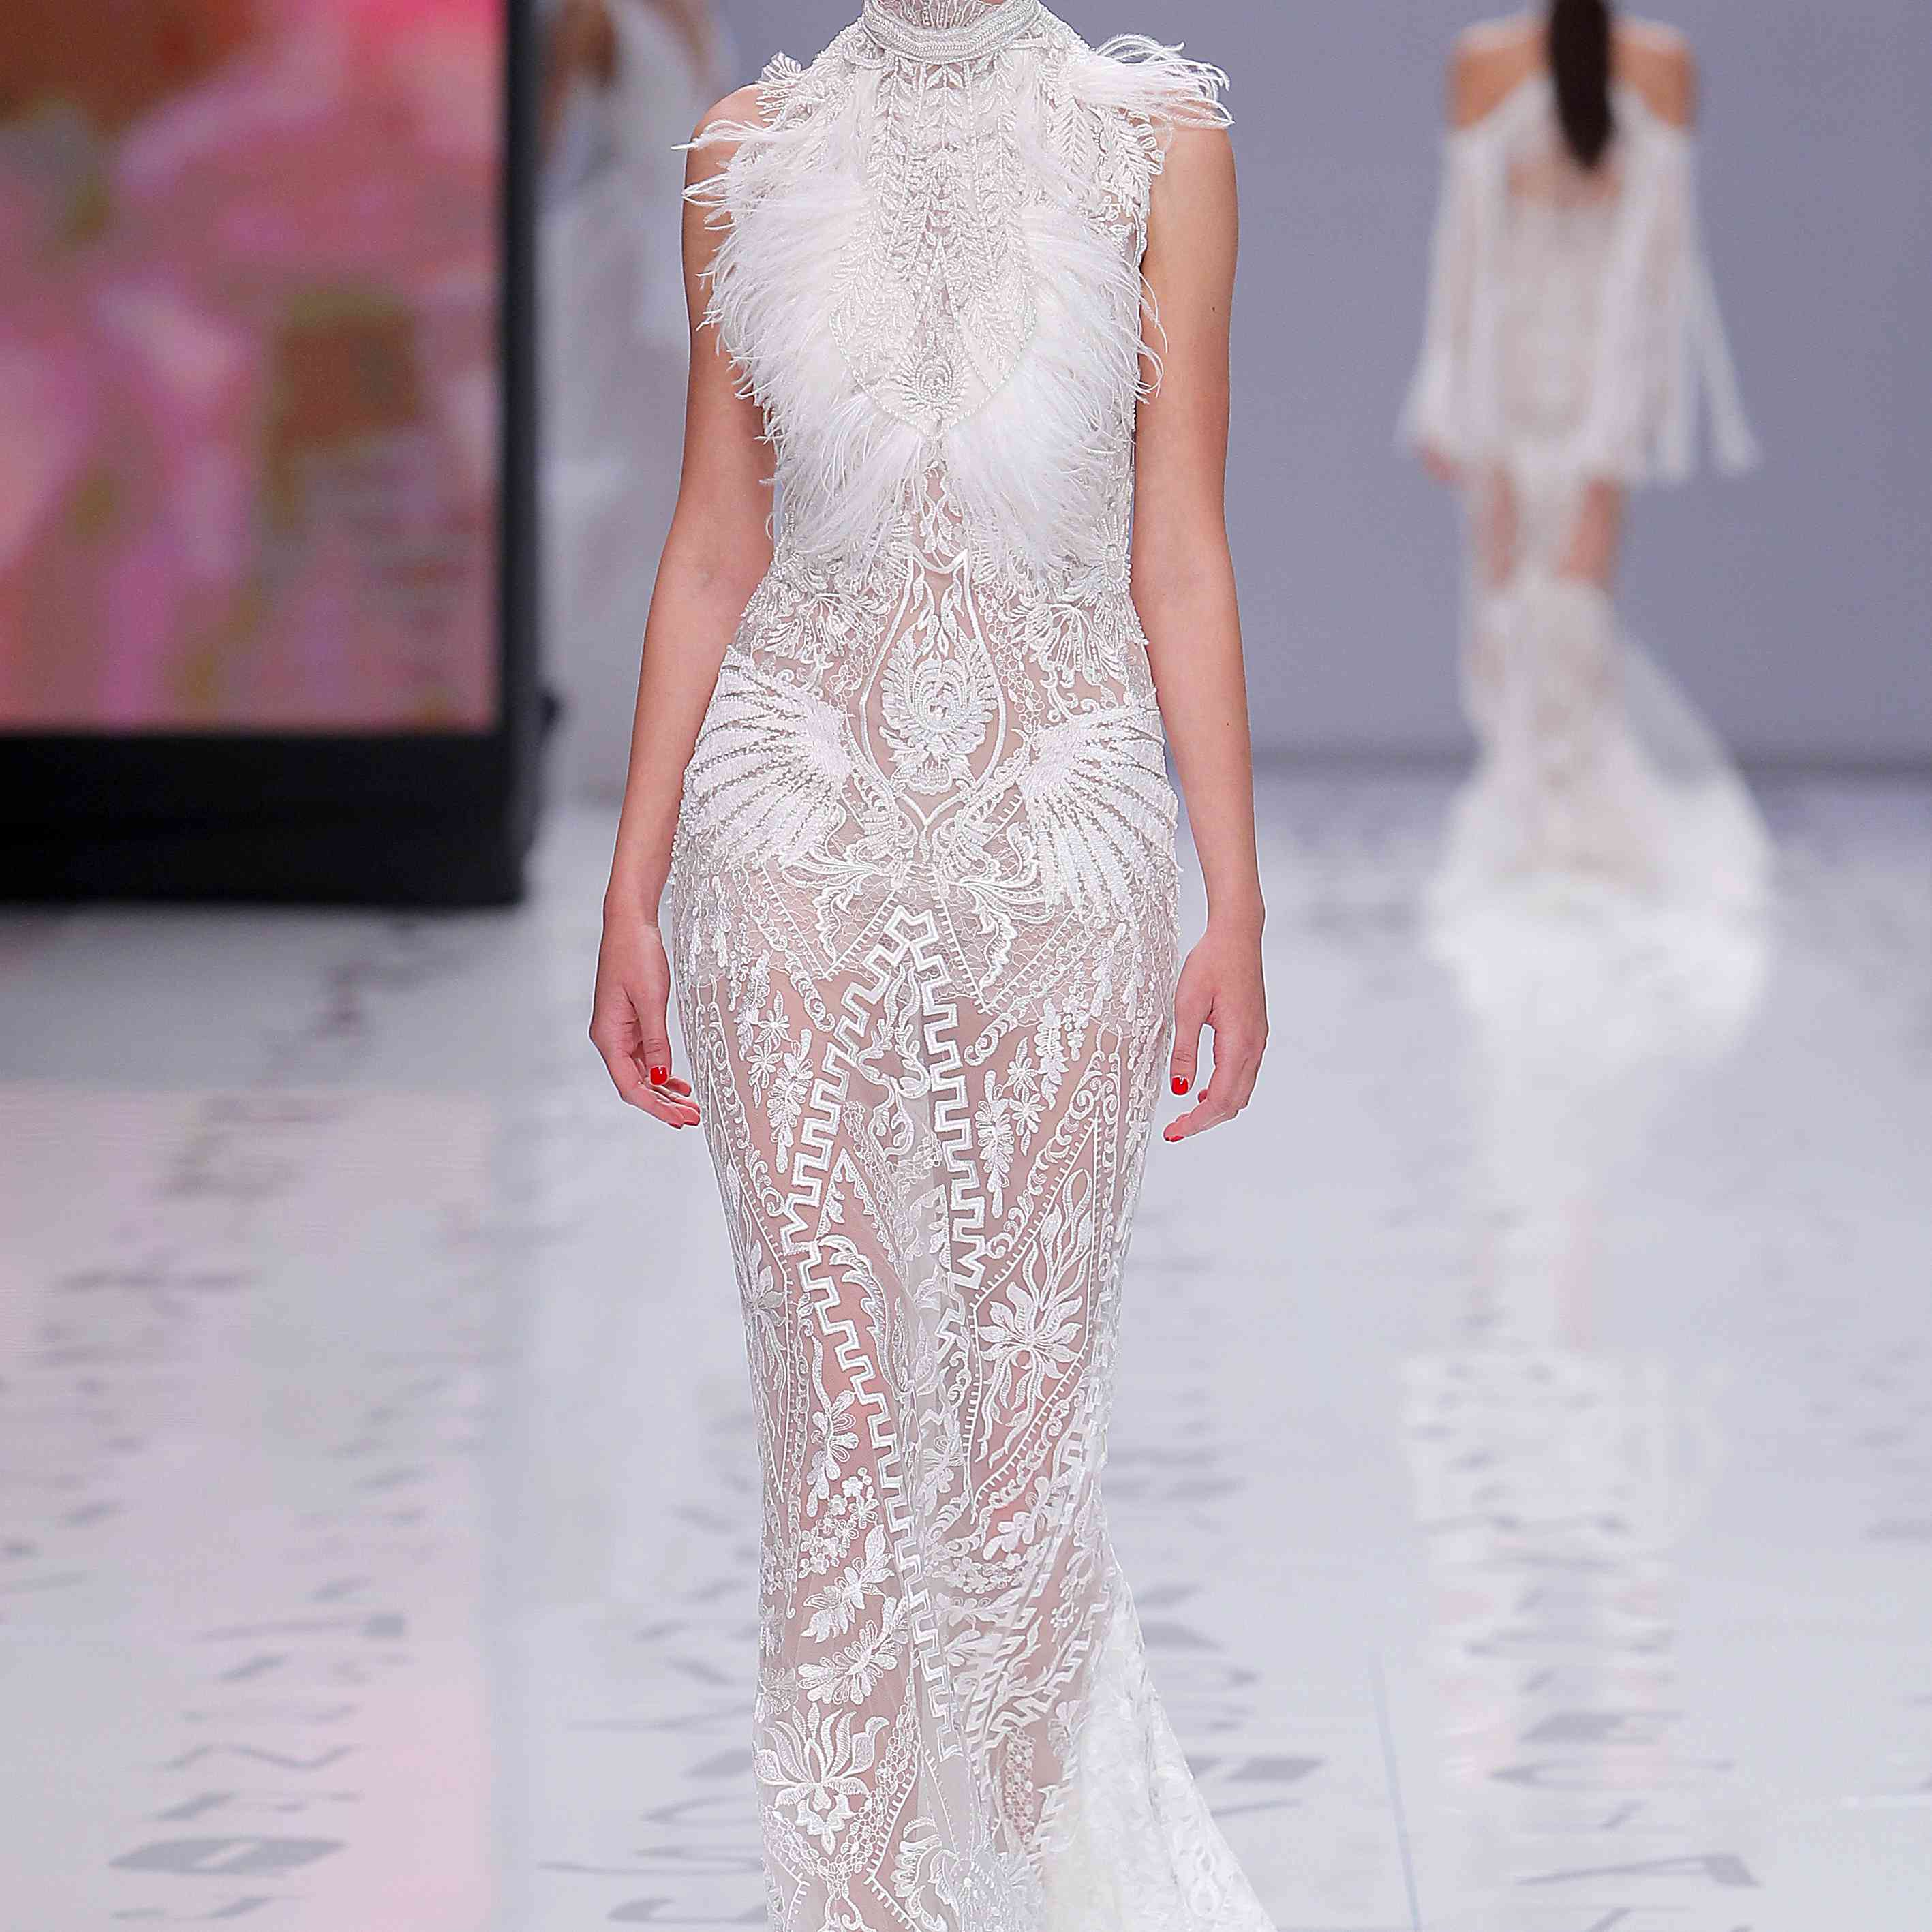 Model in a lace-embroidered sheer fitted sheath gown with a high neckline and feather details on the bodice